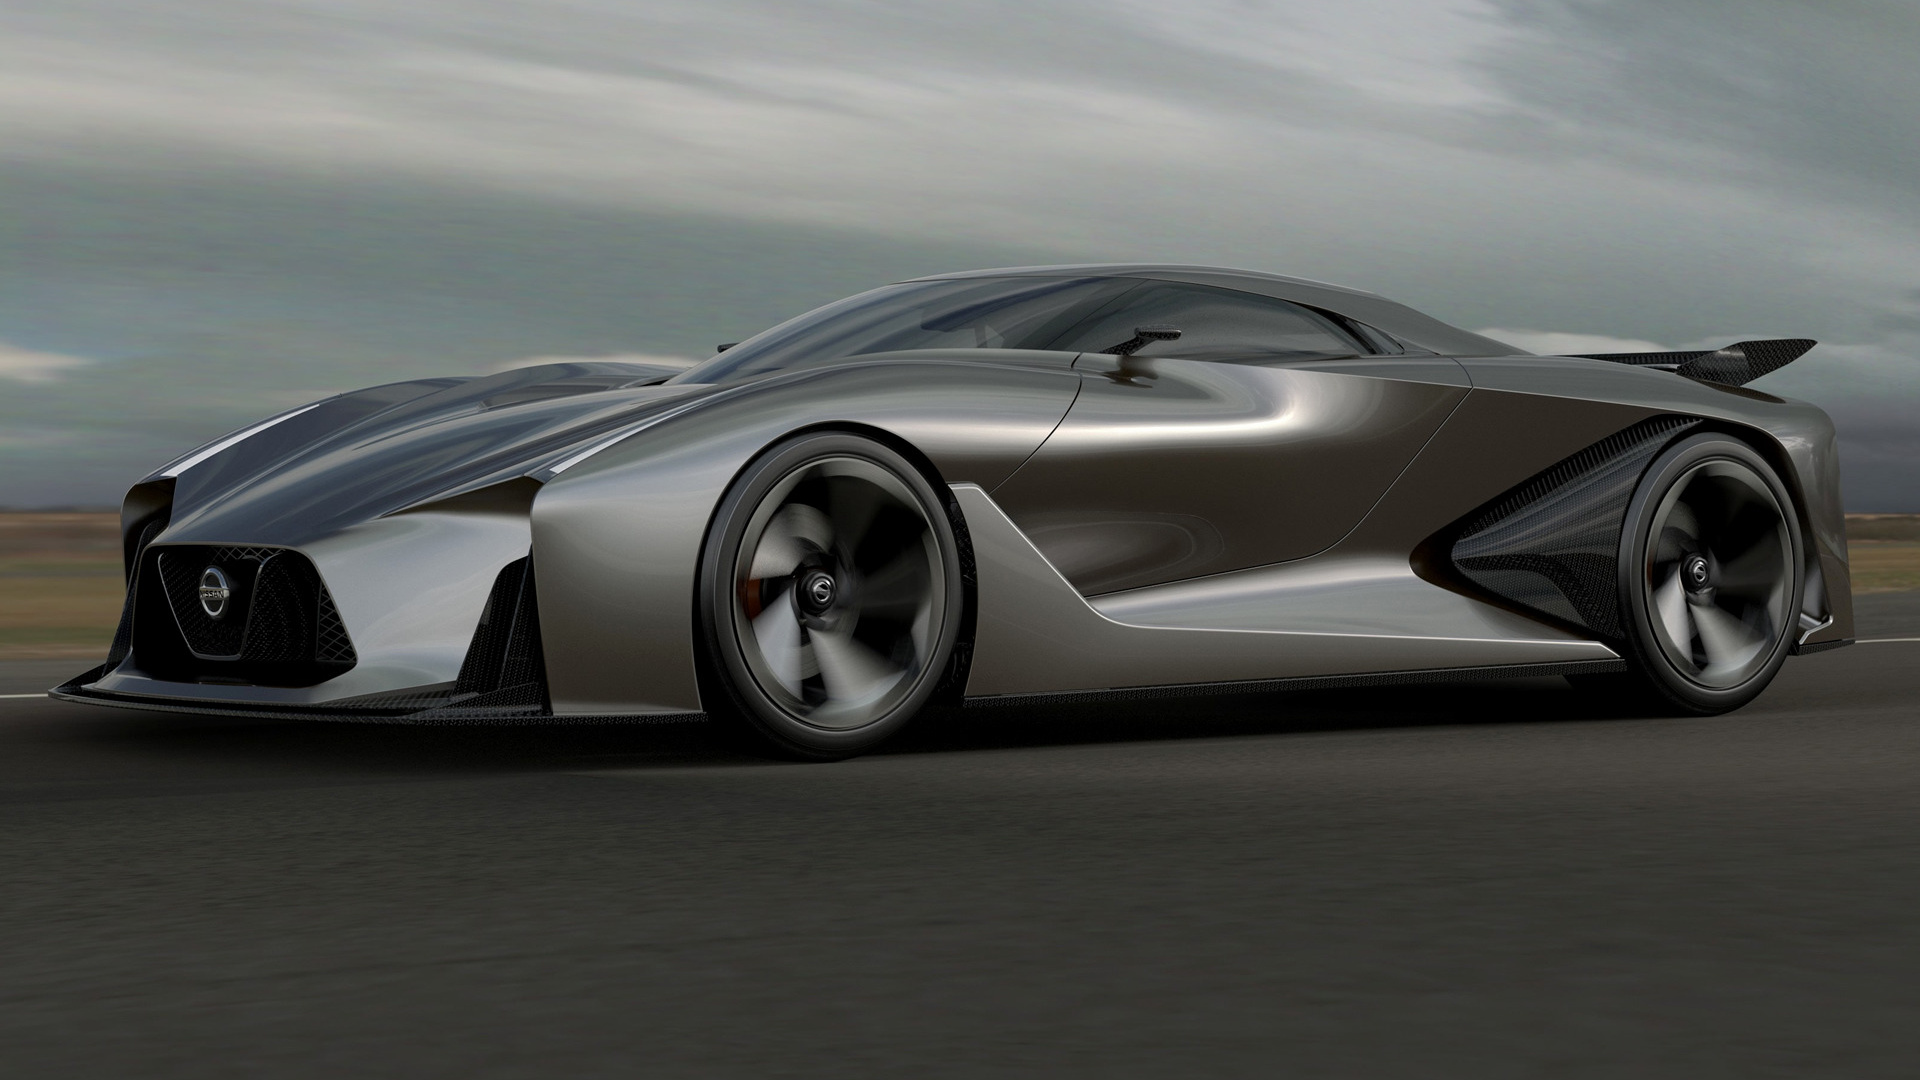 1920x1080 - Nissan Concept Wallpapers 24